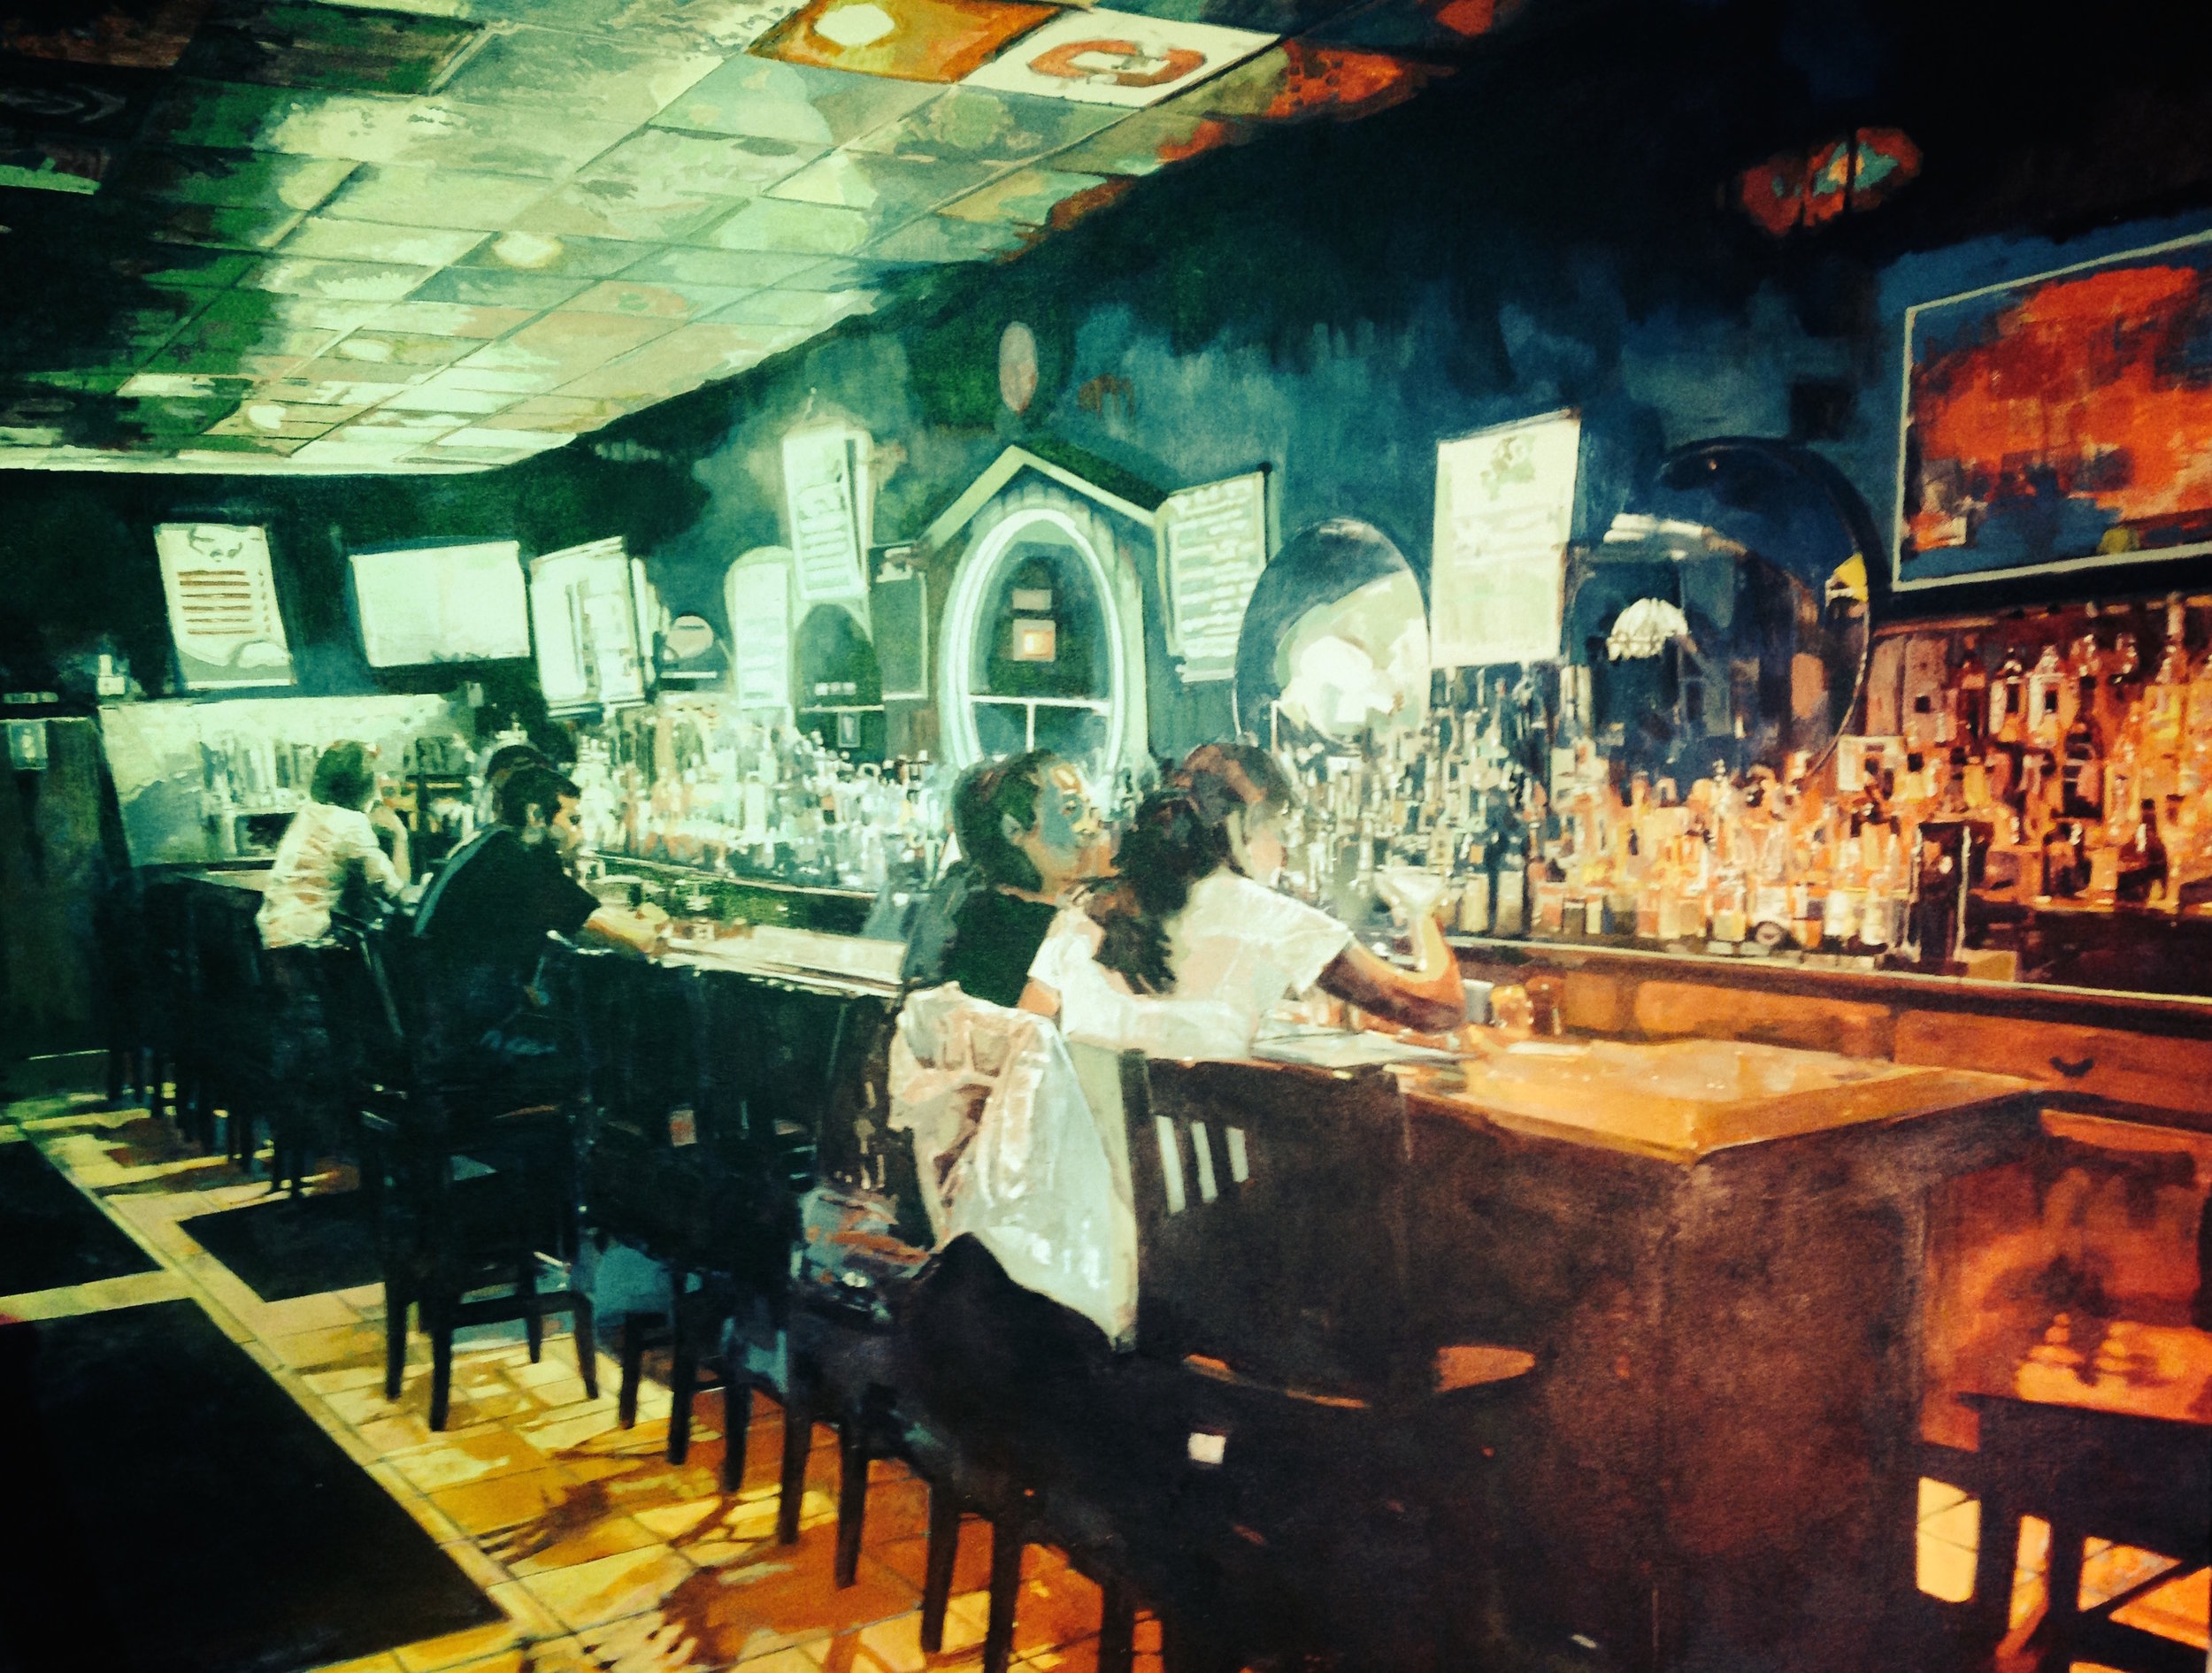 Blue Danube    collaboration with Andrew Kern   acrylic, aerosol on canvas   5' x 6'   commission for the Blue Danube Restaurant, Columbus, OH